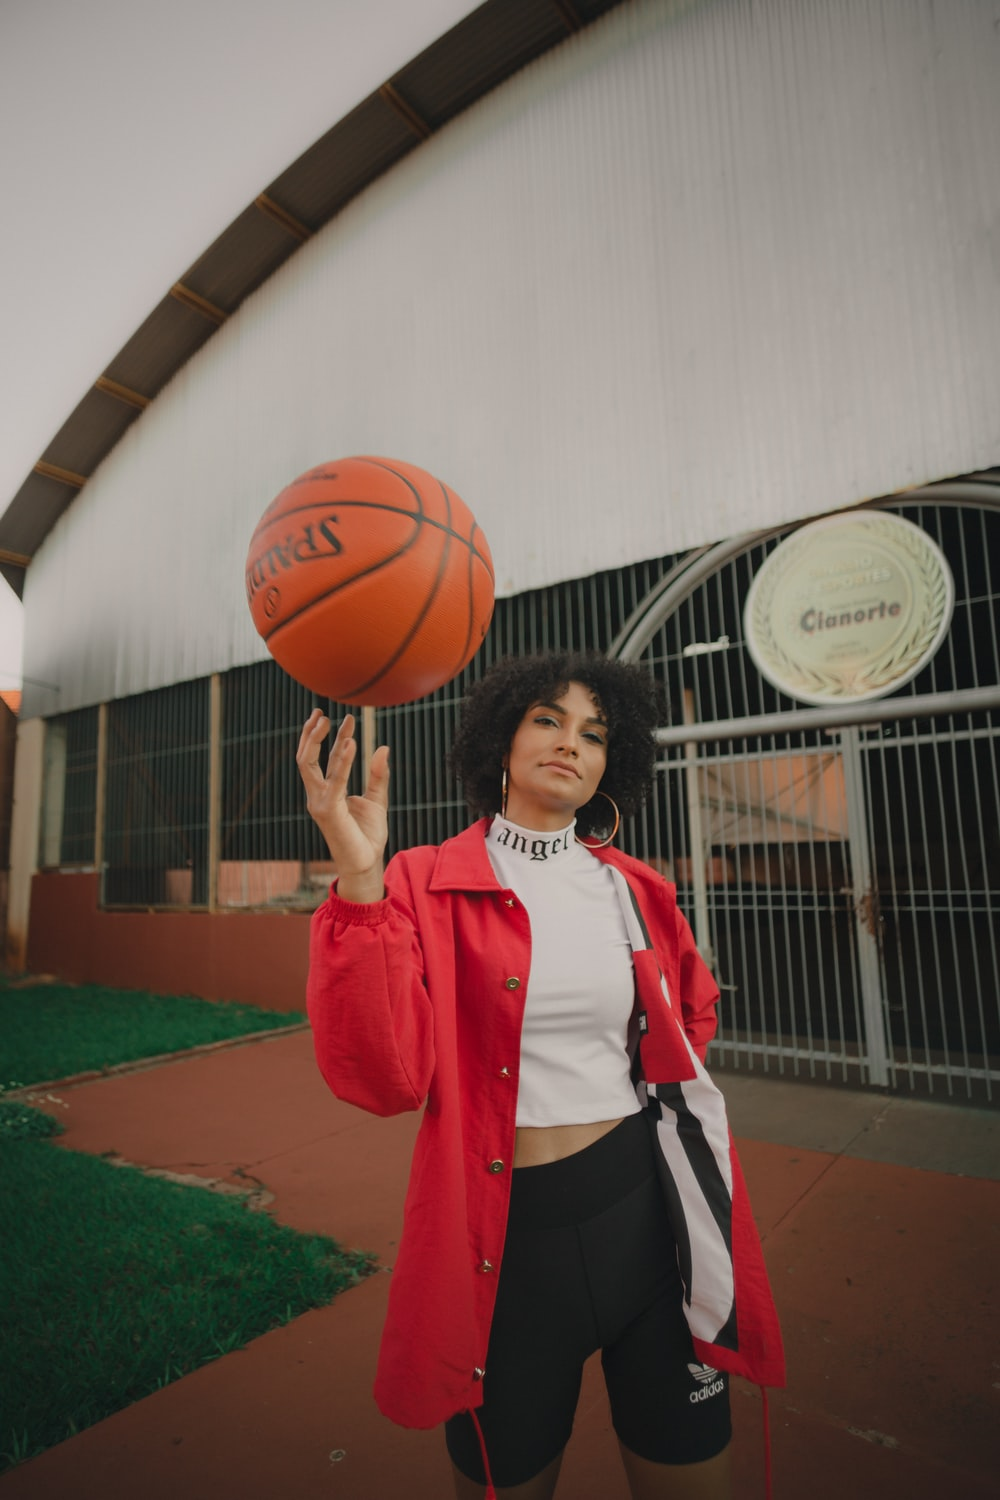 woman in red and white nike jersey holding basketball